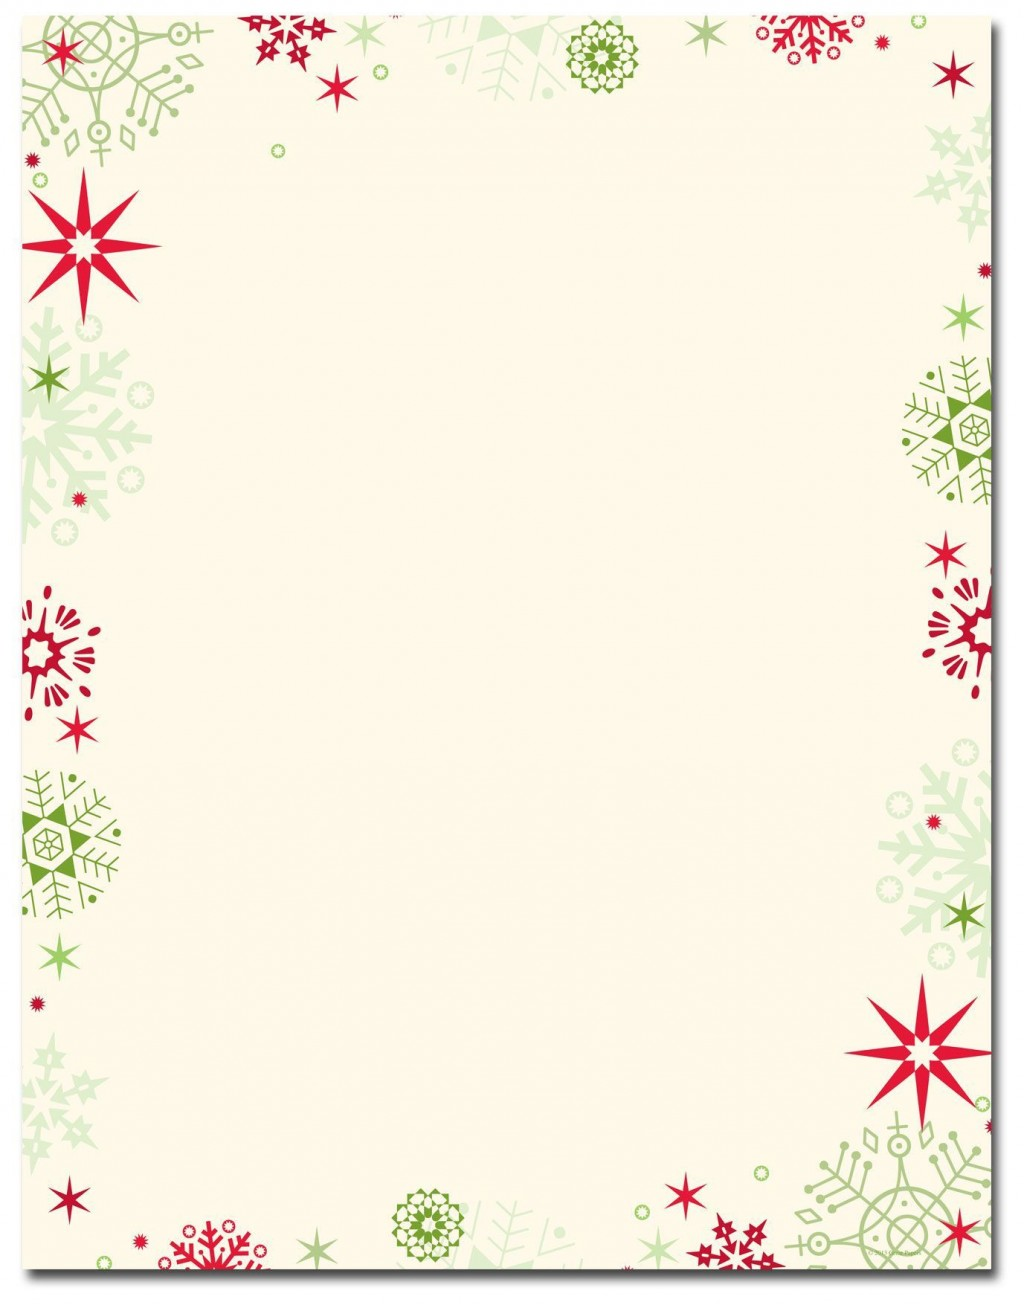 006 Excellent Free Holiday Stationery Template For Word Example Large